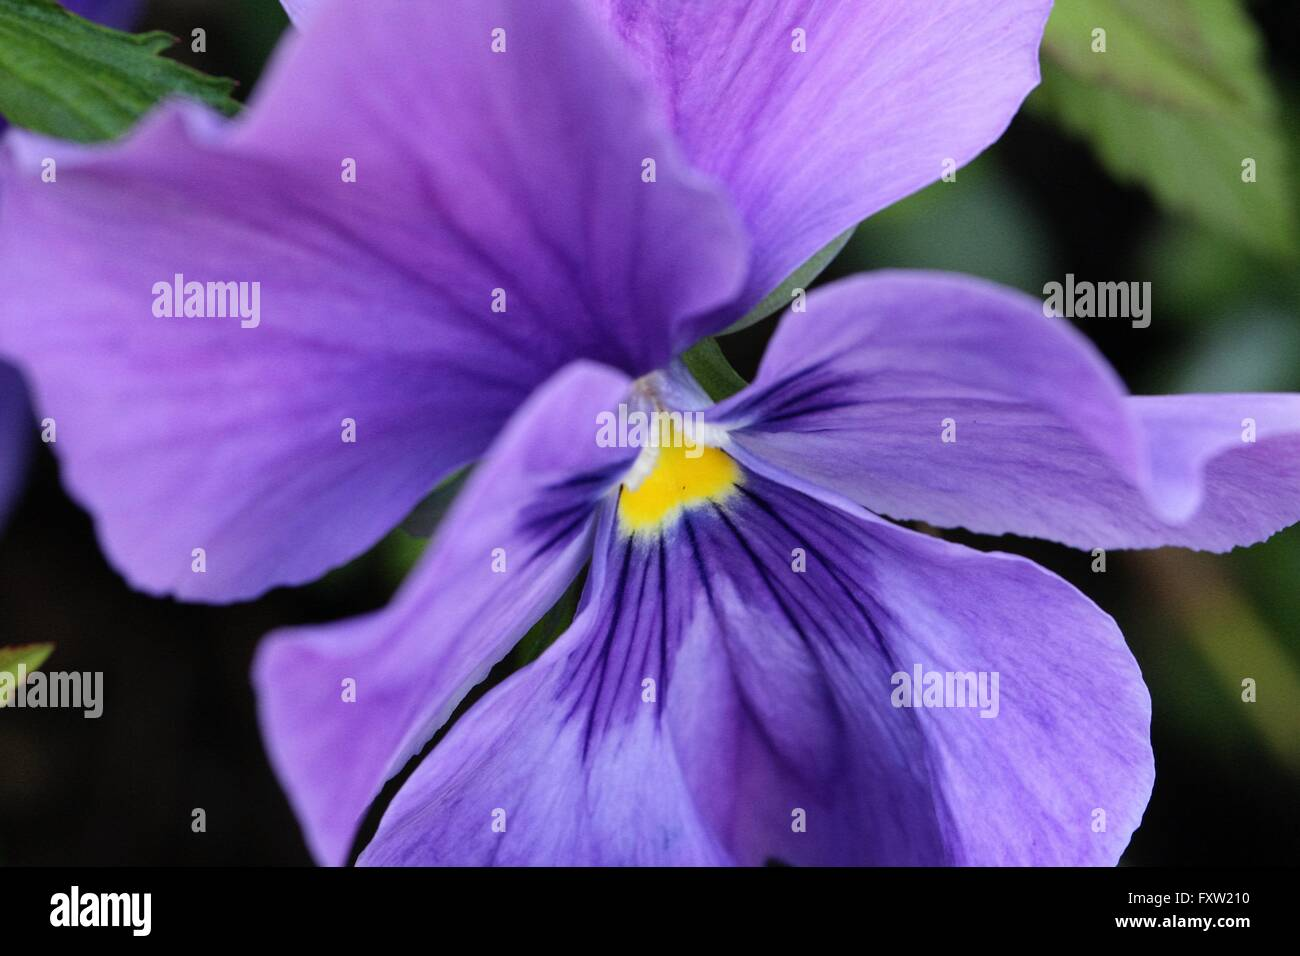 Pansy flower - Stock Image